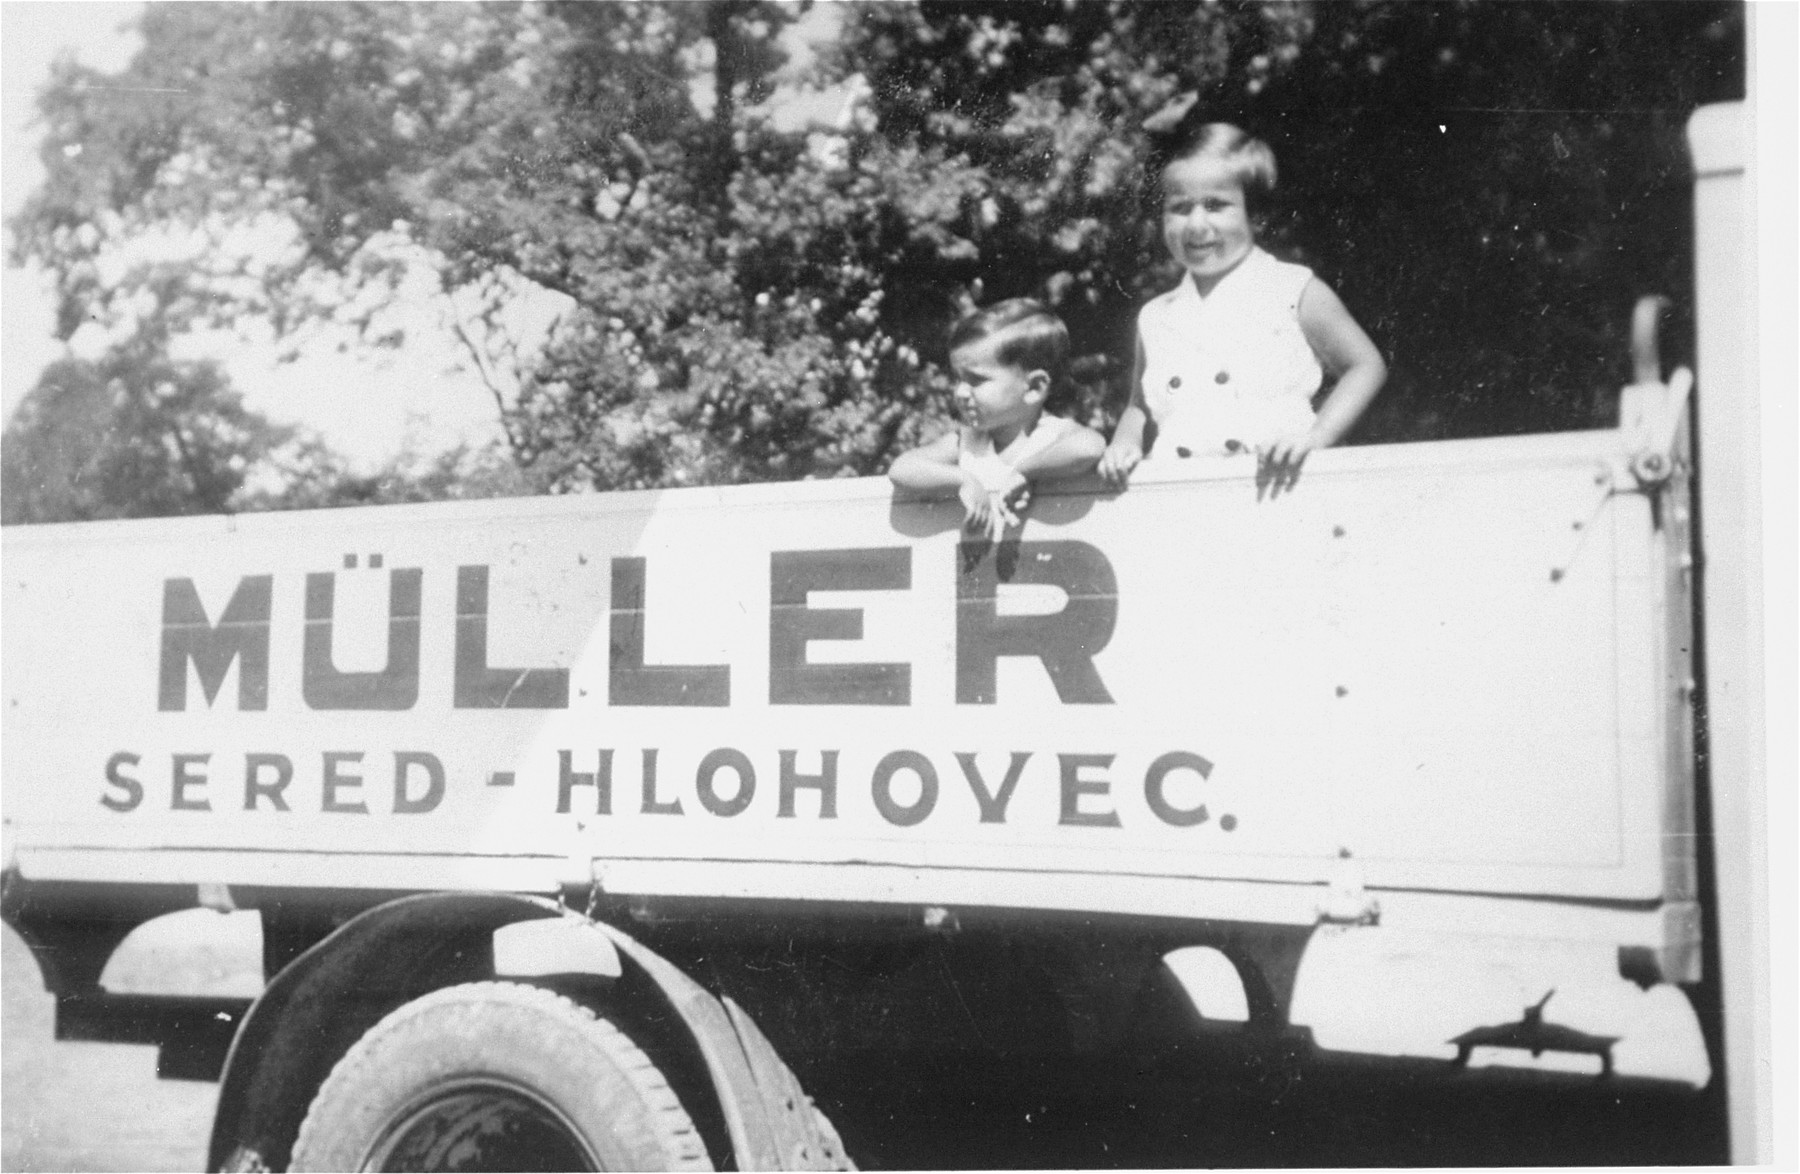 Portrait of the donor's niece and nephew, Agnes and George Muller, standing on the back of a truck bearing the name of their family's firm in Sered, Czechoslovakia.